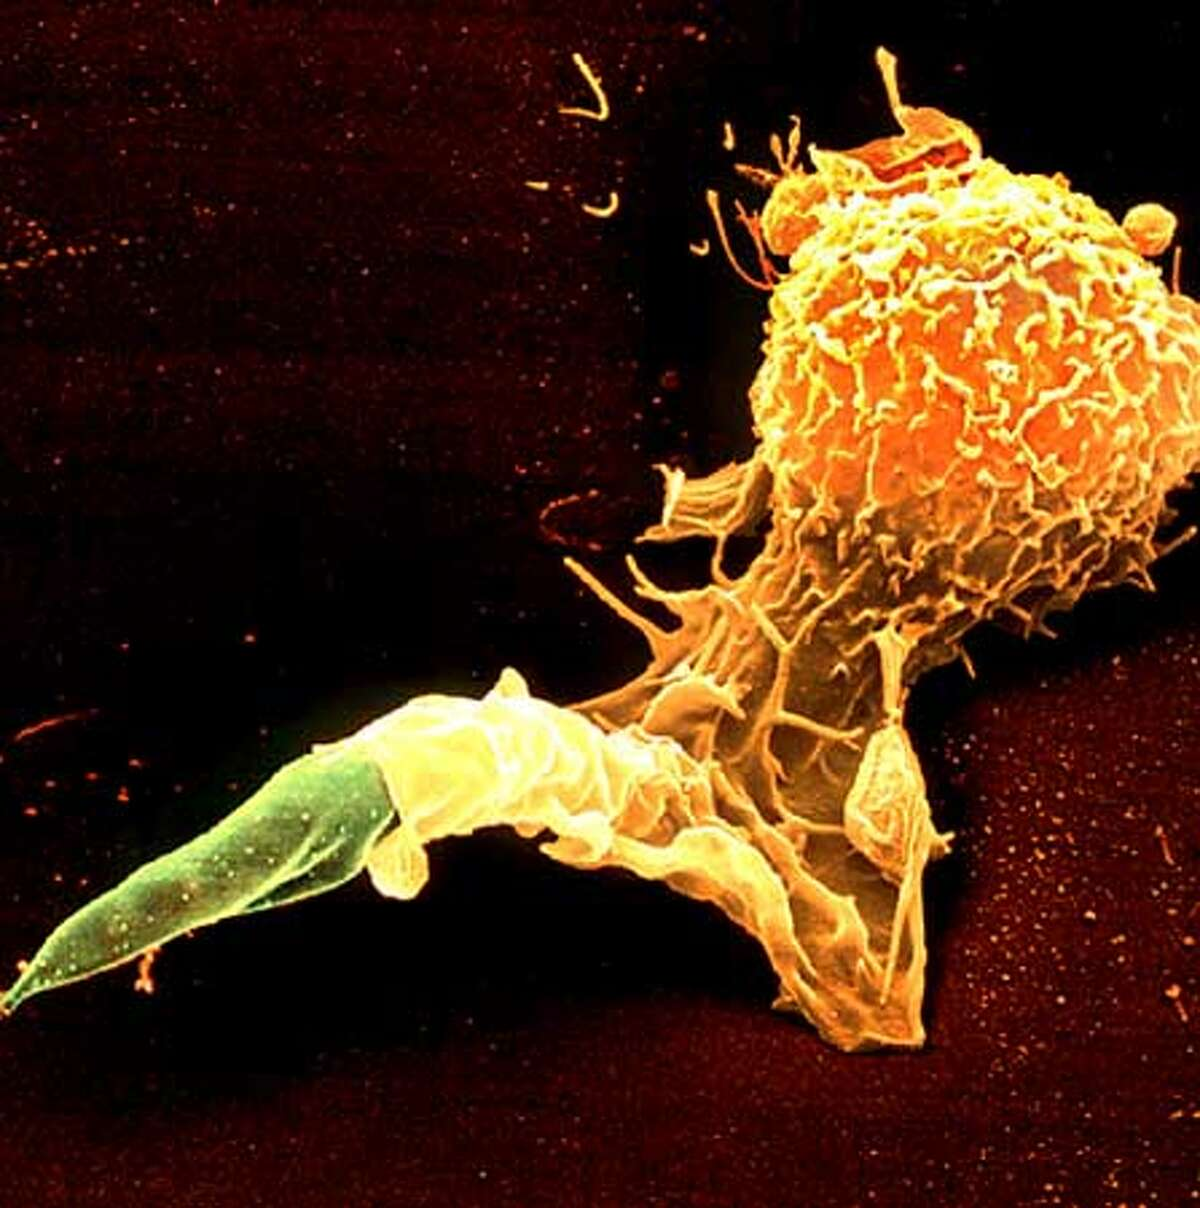 SCIENCE23/C/20APR01/SC/HOCOLORED SCANNING ELECTRON MICROGRAPH (SEM) OF A MACROPHAGE WHITE BLOOD CELL ENGULFING A LEISHMANIA MEXICANA PROTOZOAN. CREDIT: JUERGEN BERGER, MAX-PLANCK INSTITUTE/SCIENCE PHOTO LIBRARY